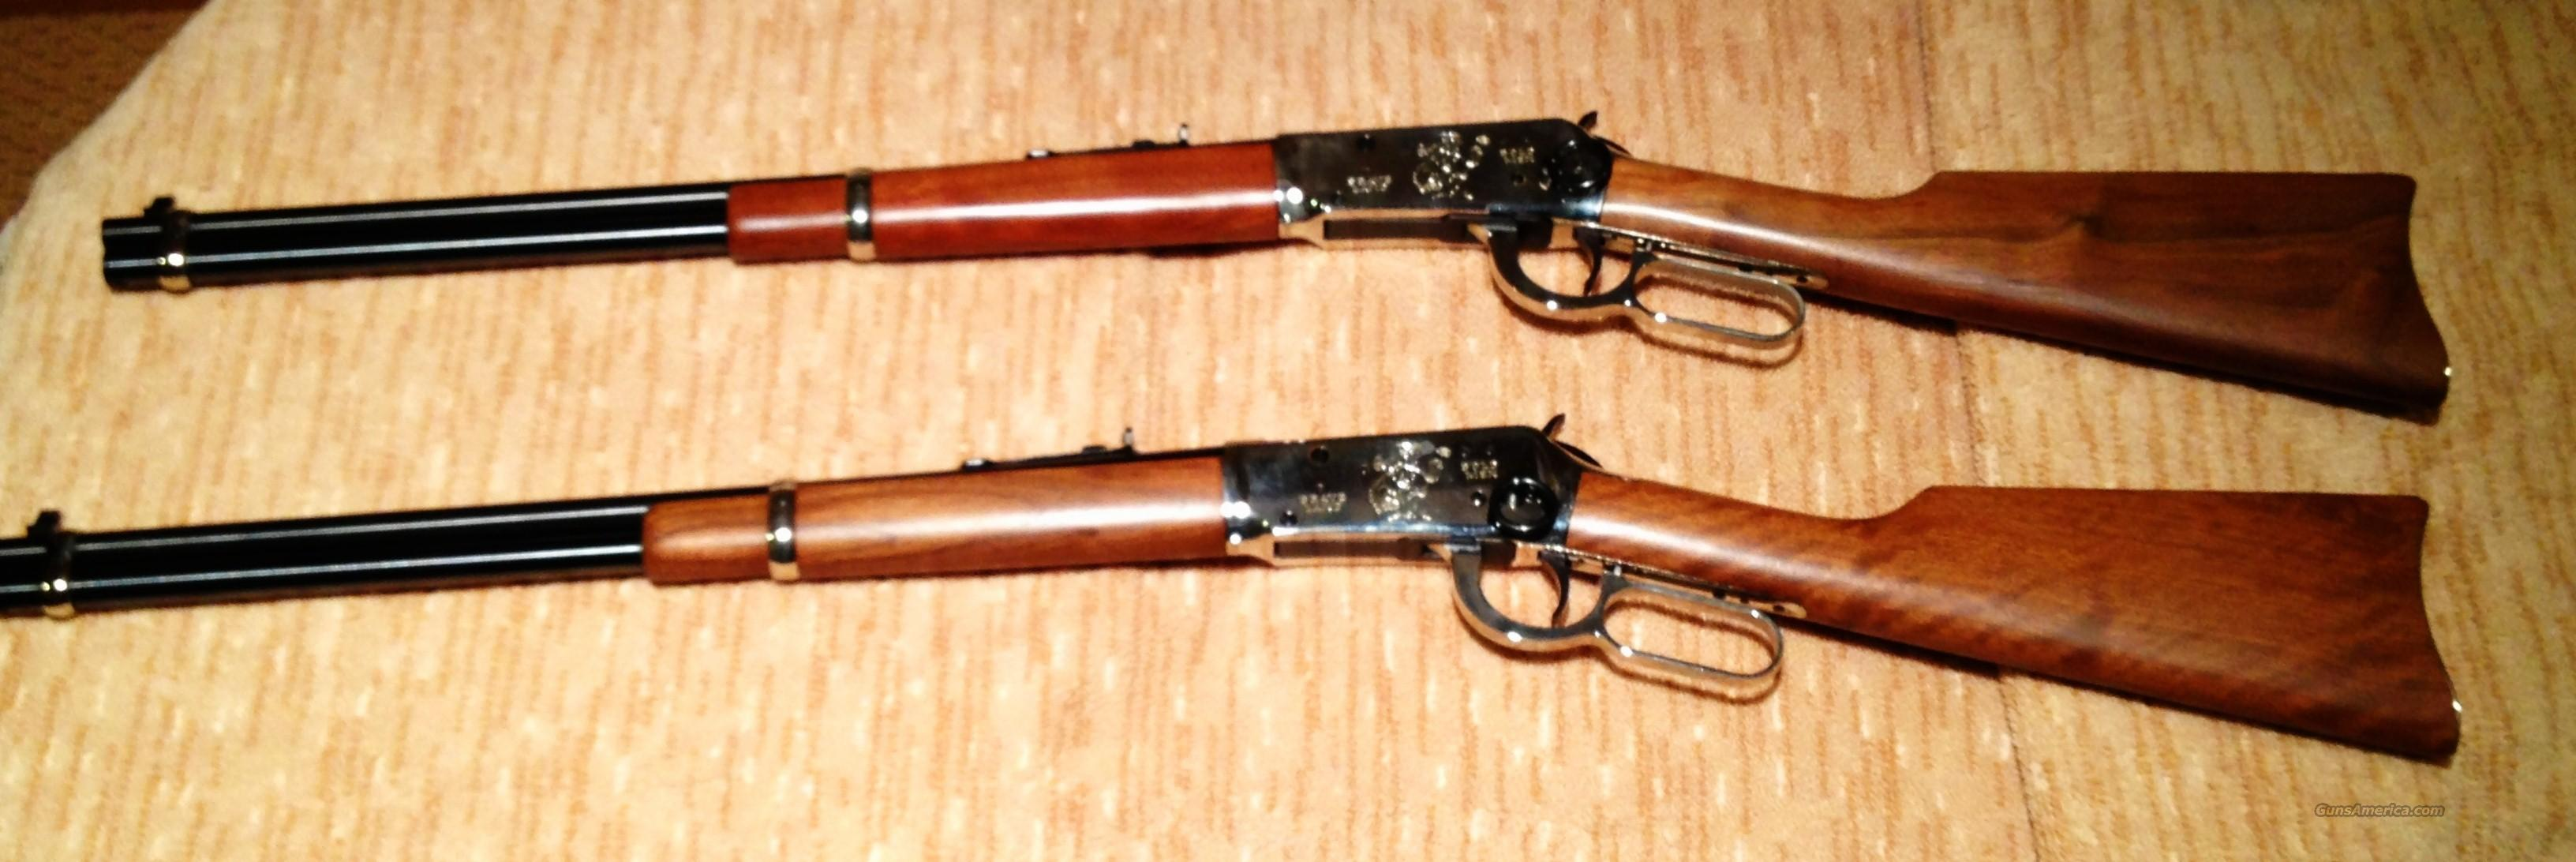 Set of 2 --- Cowboy Commemorative Winchester Model 94 30-30 Rifles  Guns > Rifles > Winchester Rifle Commemoratives